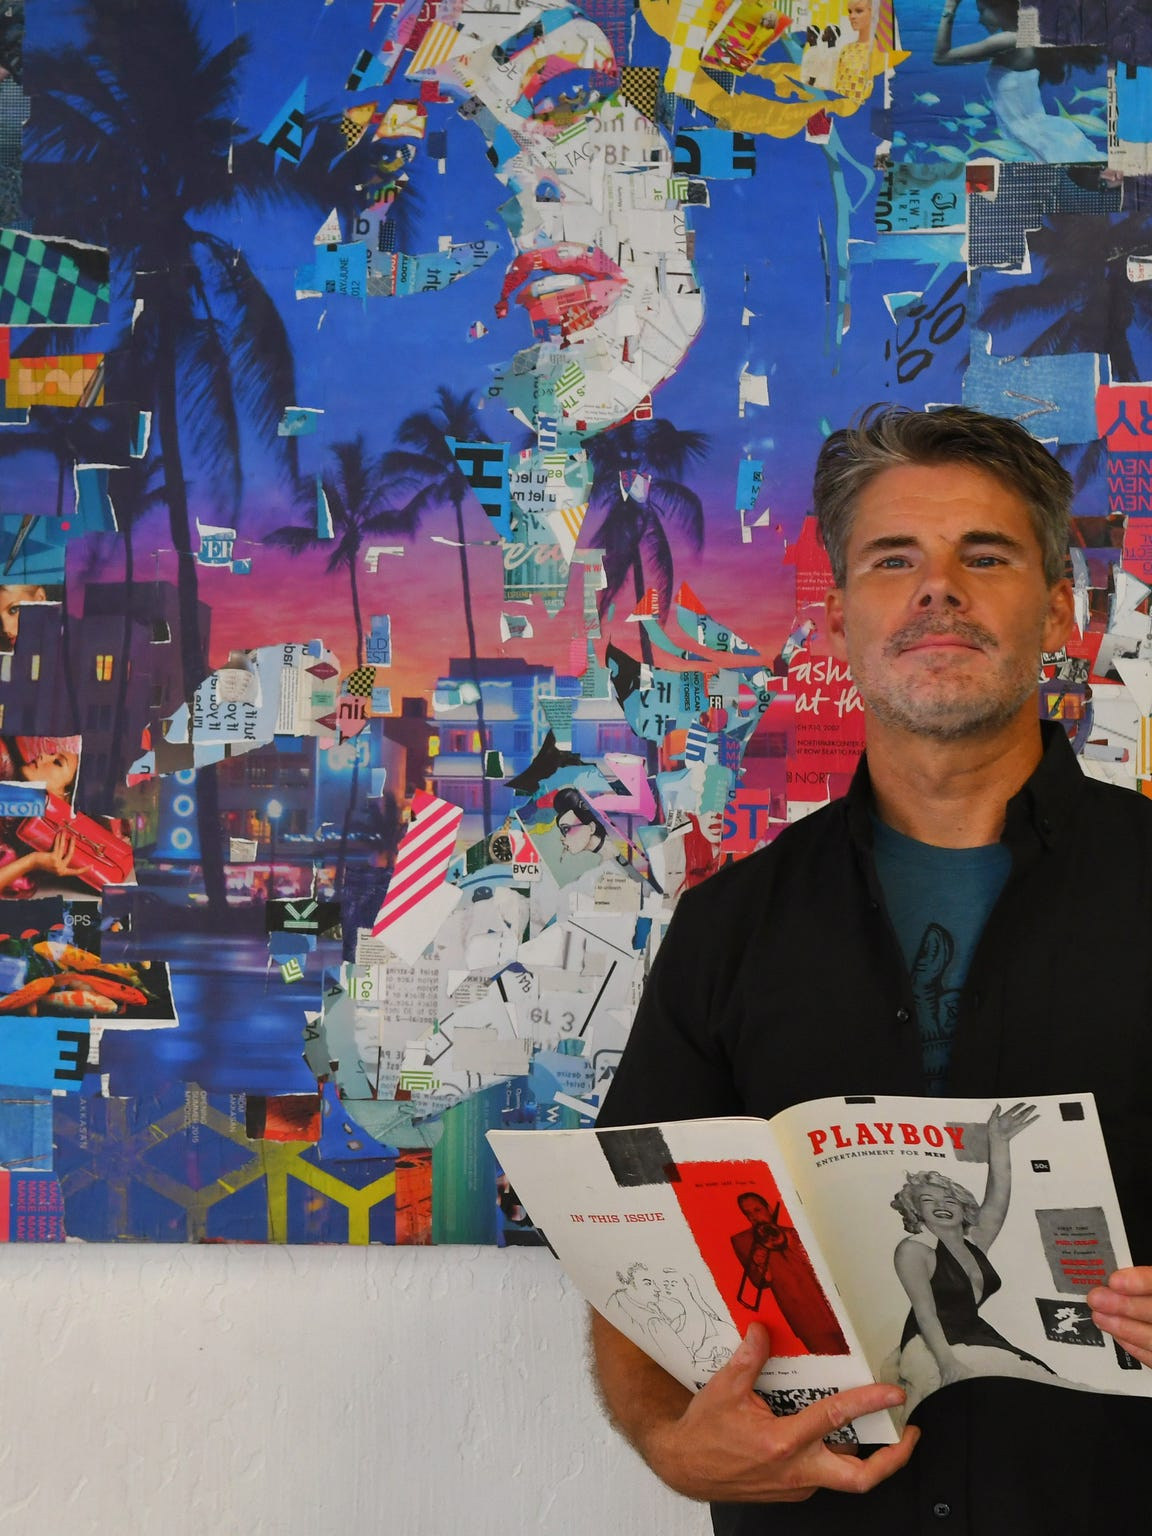 Standing in front of one of his collage creations, Eau Gallie artist Derek Gores approached Playboy to create a cover of magazine founder Hugh Hefner.